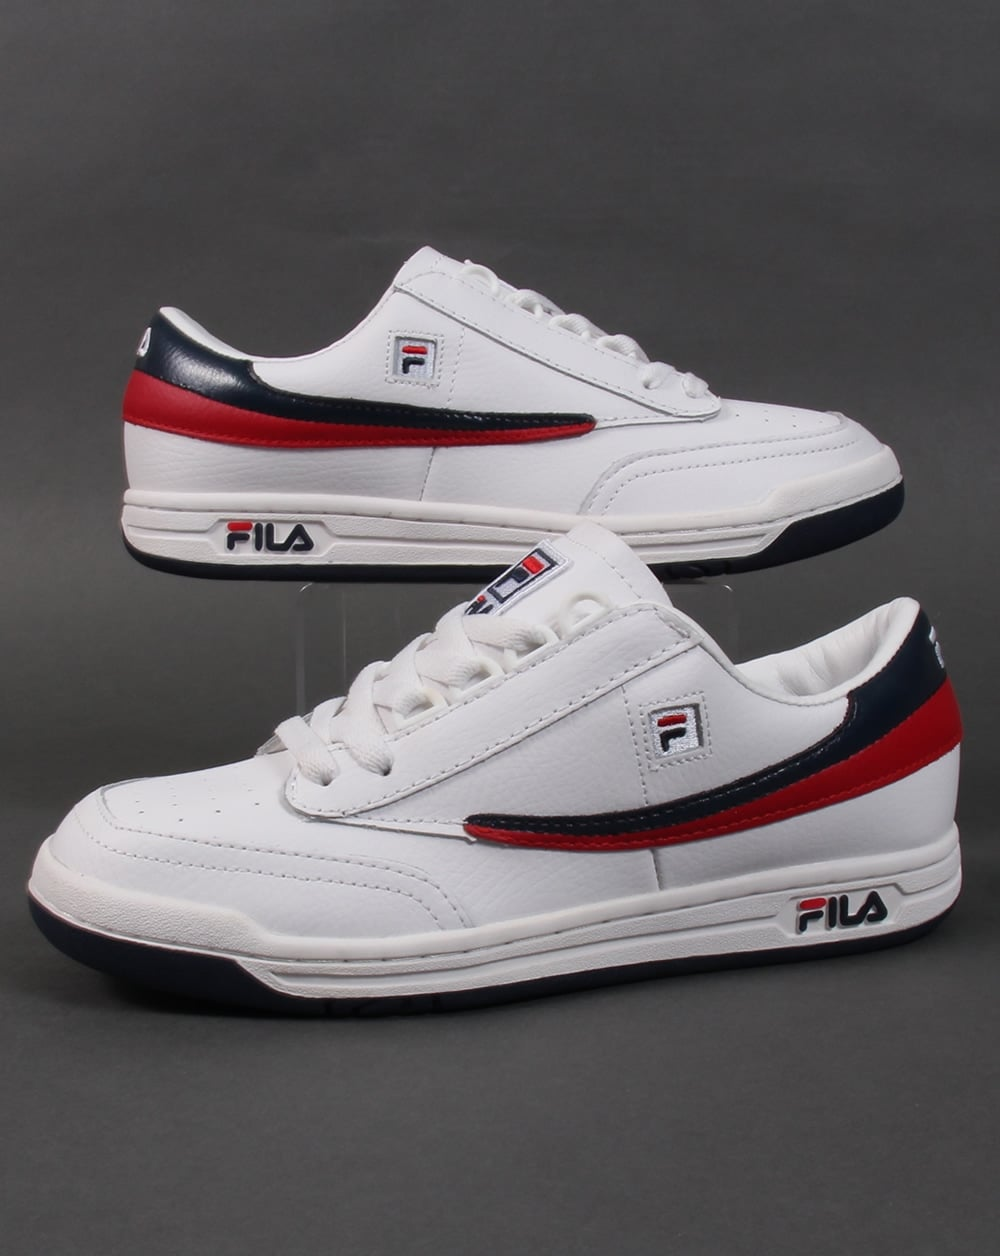 fila shoes from 1995 camaro z28